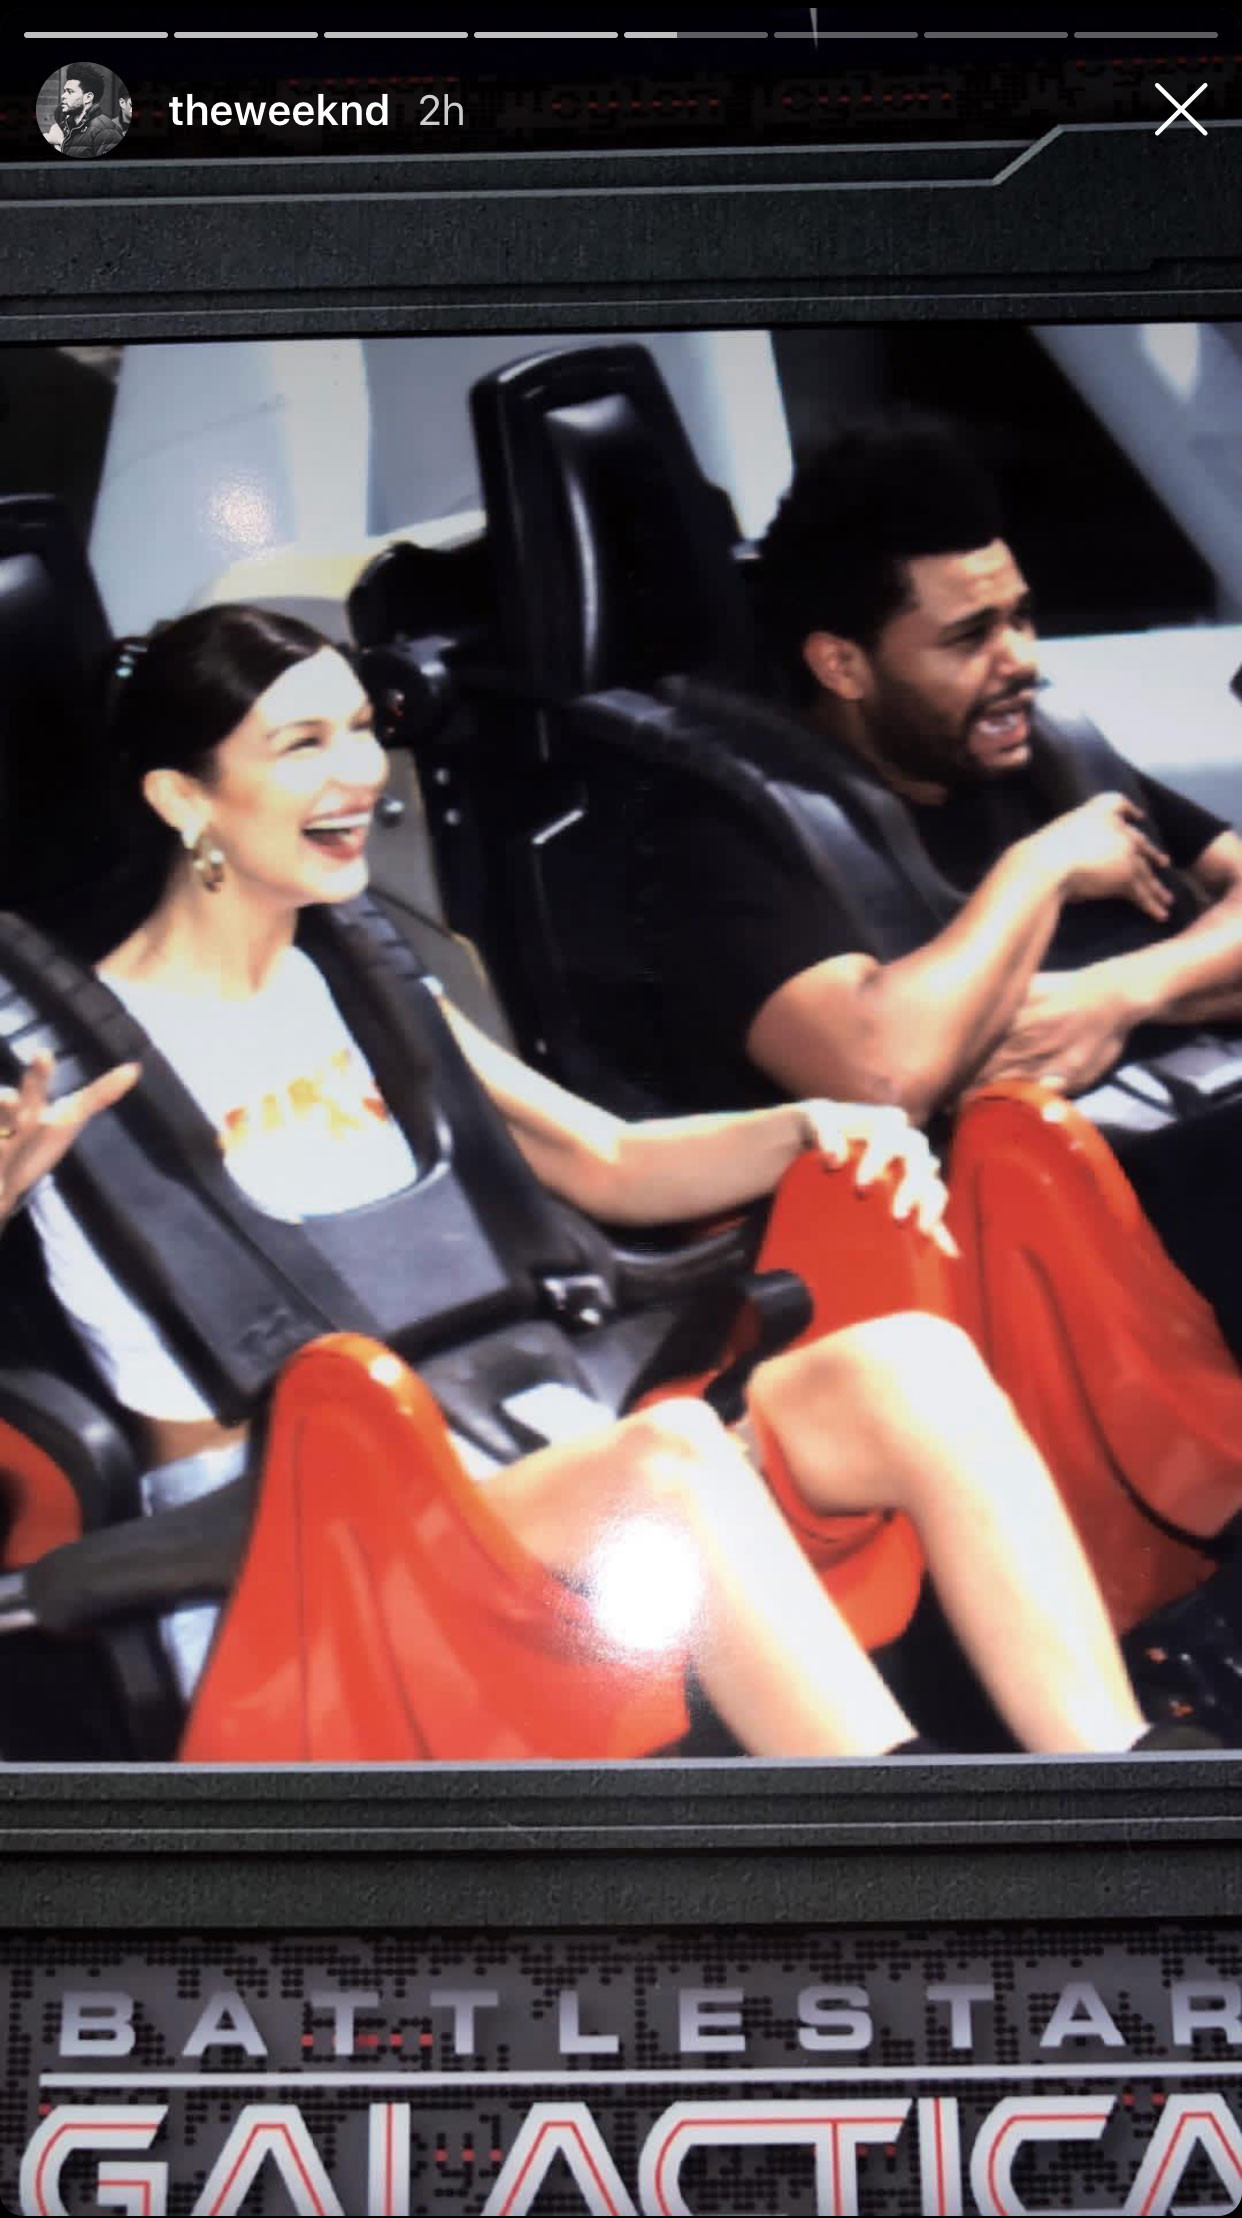 Bella Hadid & The Weeknd in Singapore